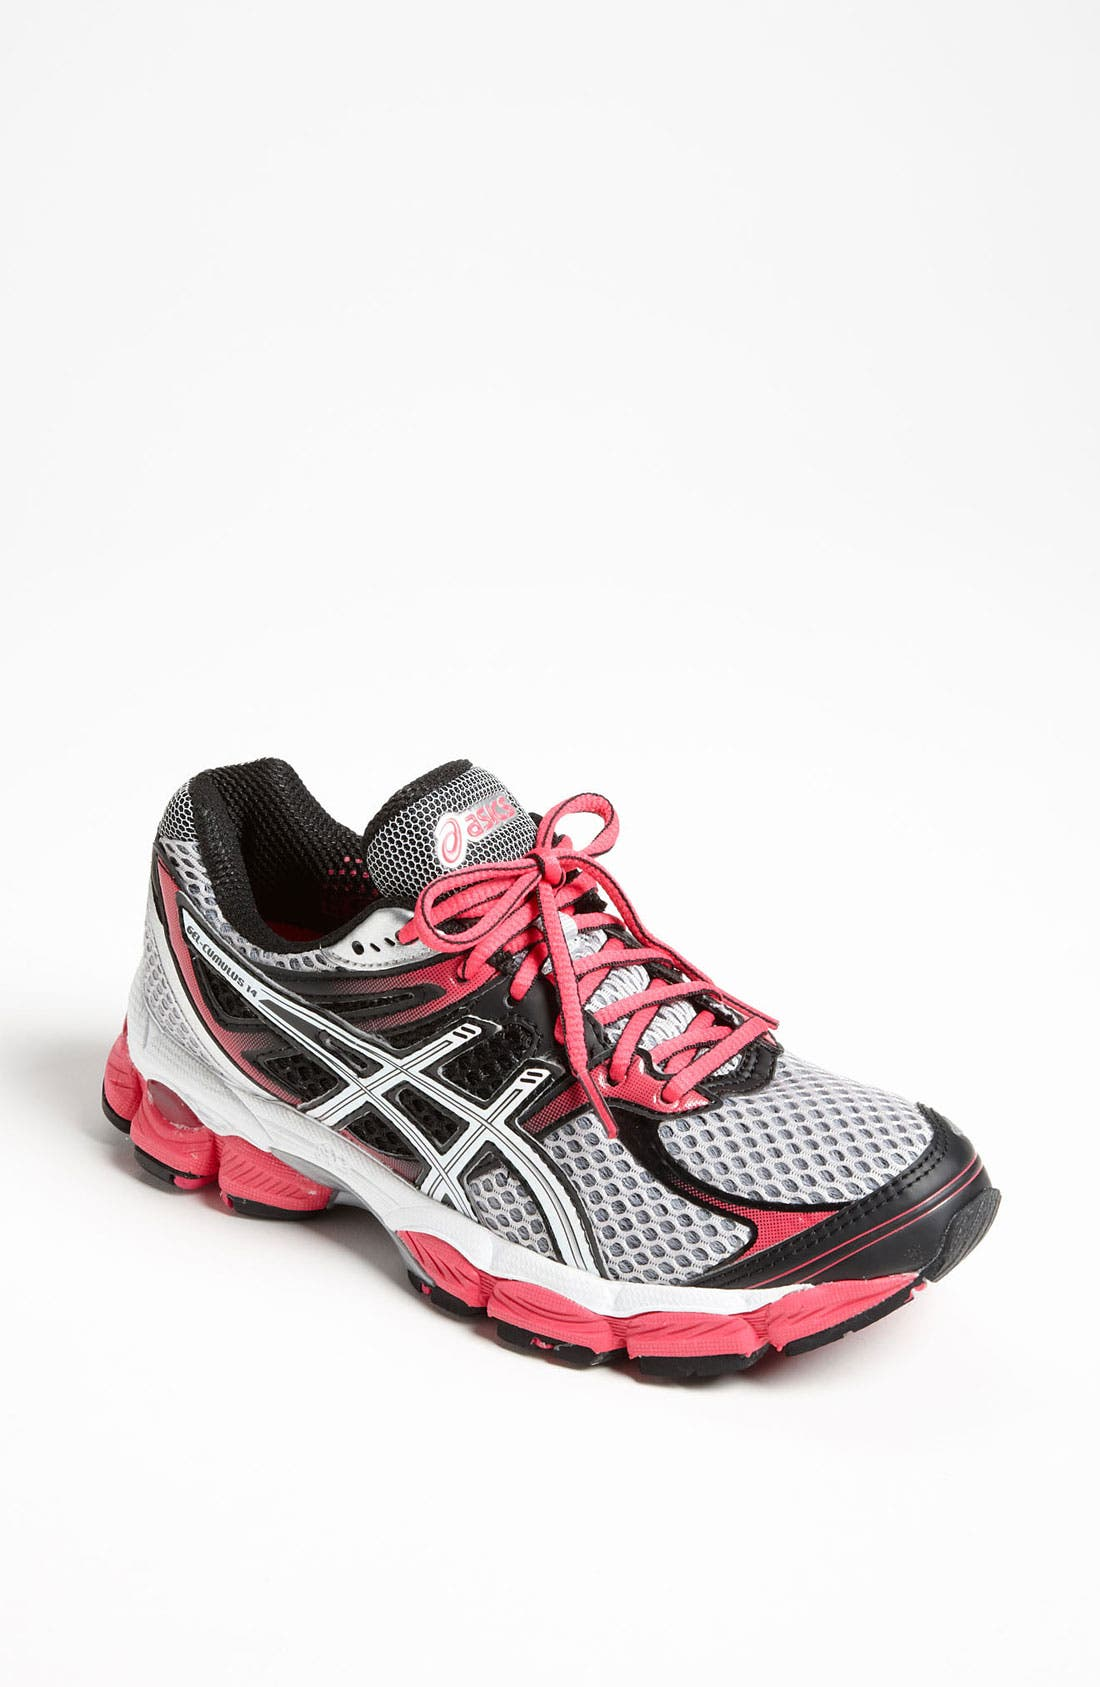 Main Image - ASICS® 'GEL-Cumulus 14' Running Shoe (Women)(Retail Price: $109.95)